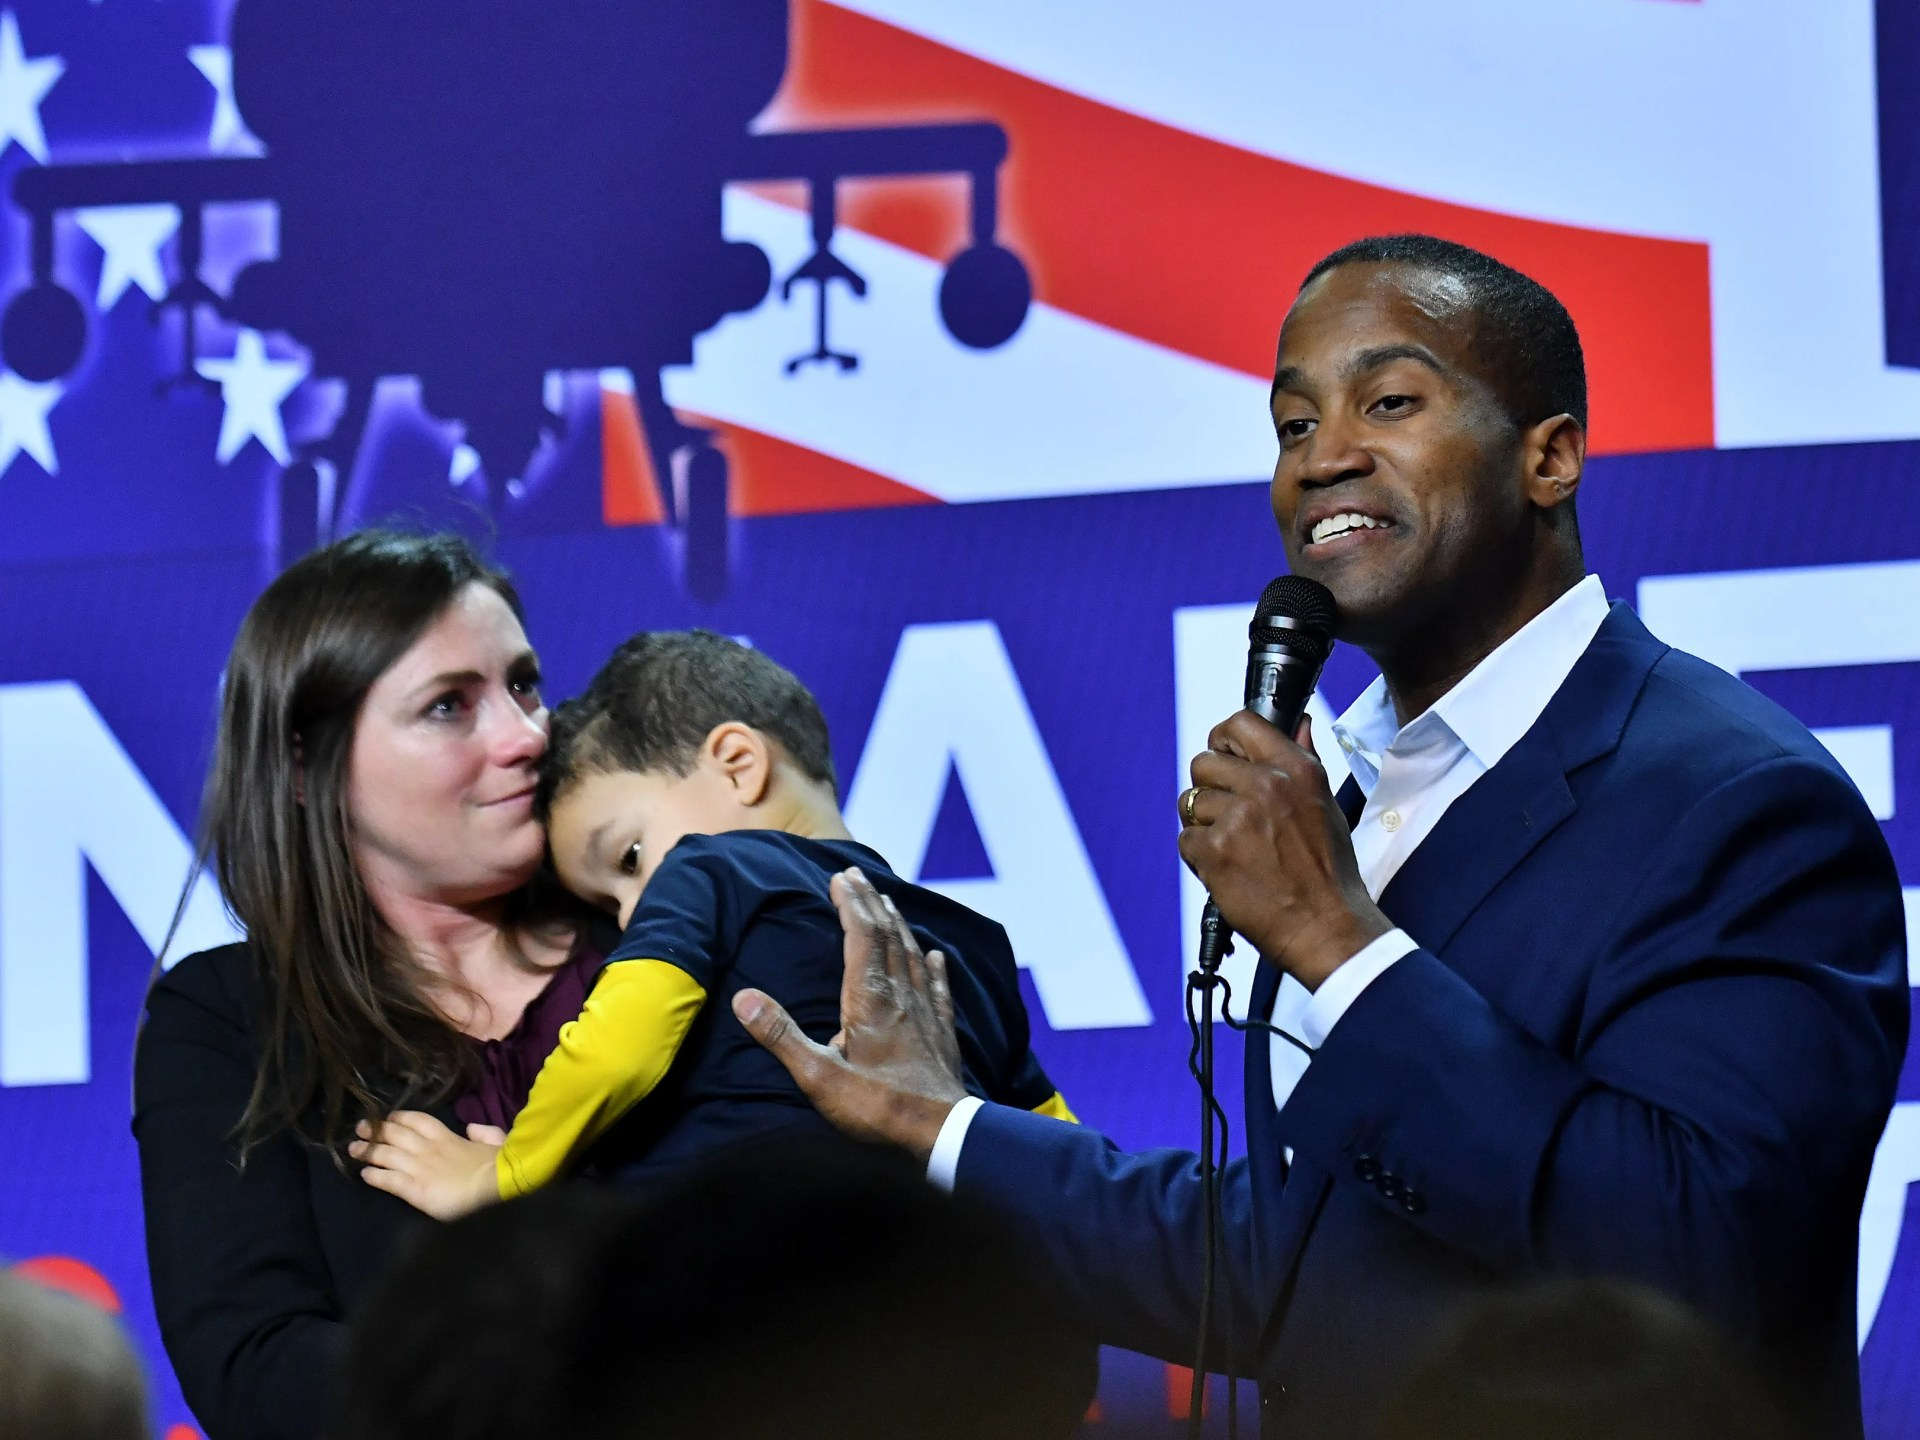 With wife Elizabeth at his side, Republican U.S. Senate candidate John James thanks his supporters, concedes the race and says he will enjoy having more time with his family. He spoke at his election night party  at James Group International in Detroit.